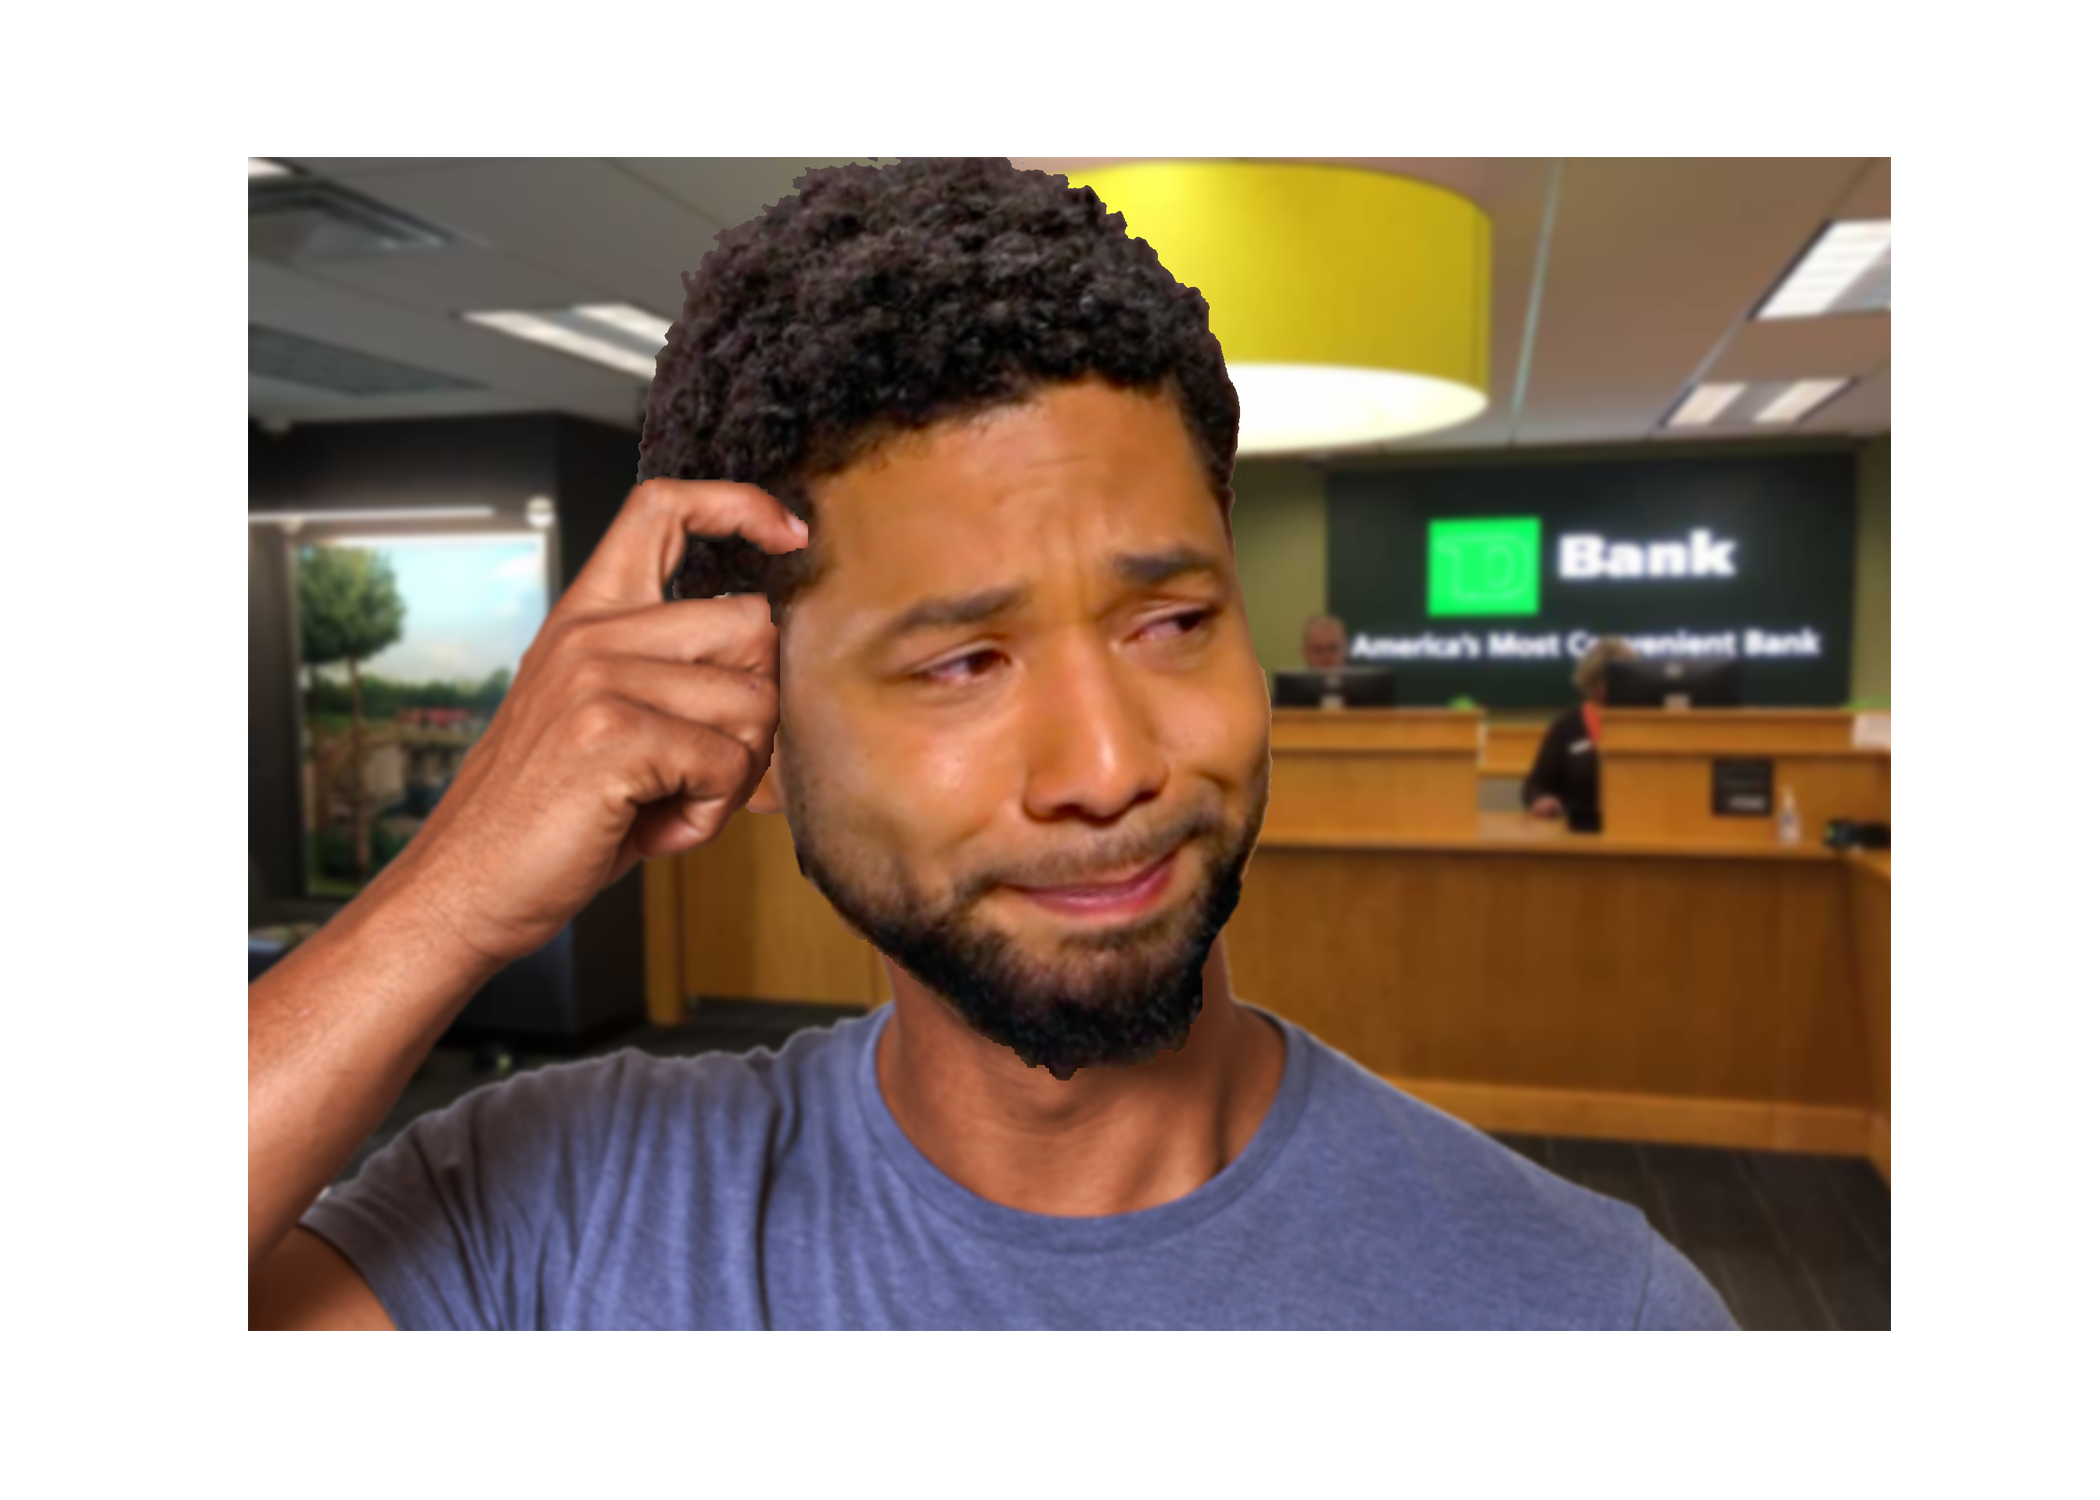 bank jussie2.png